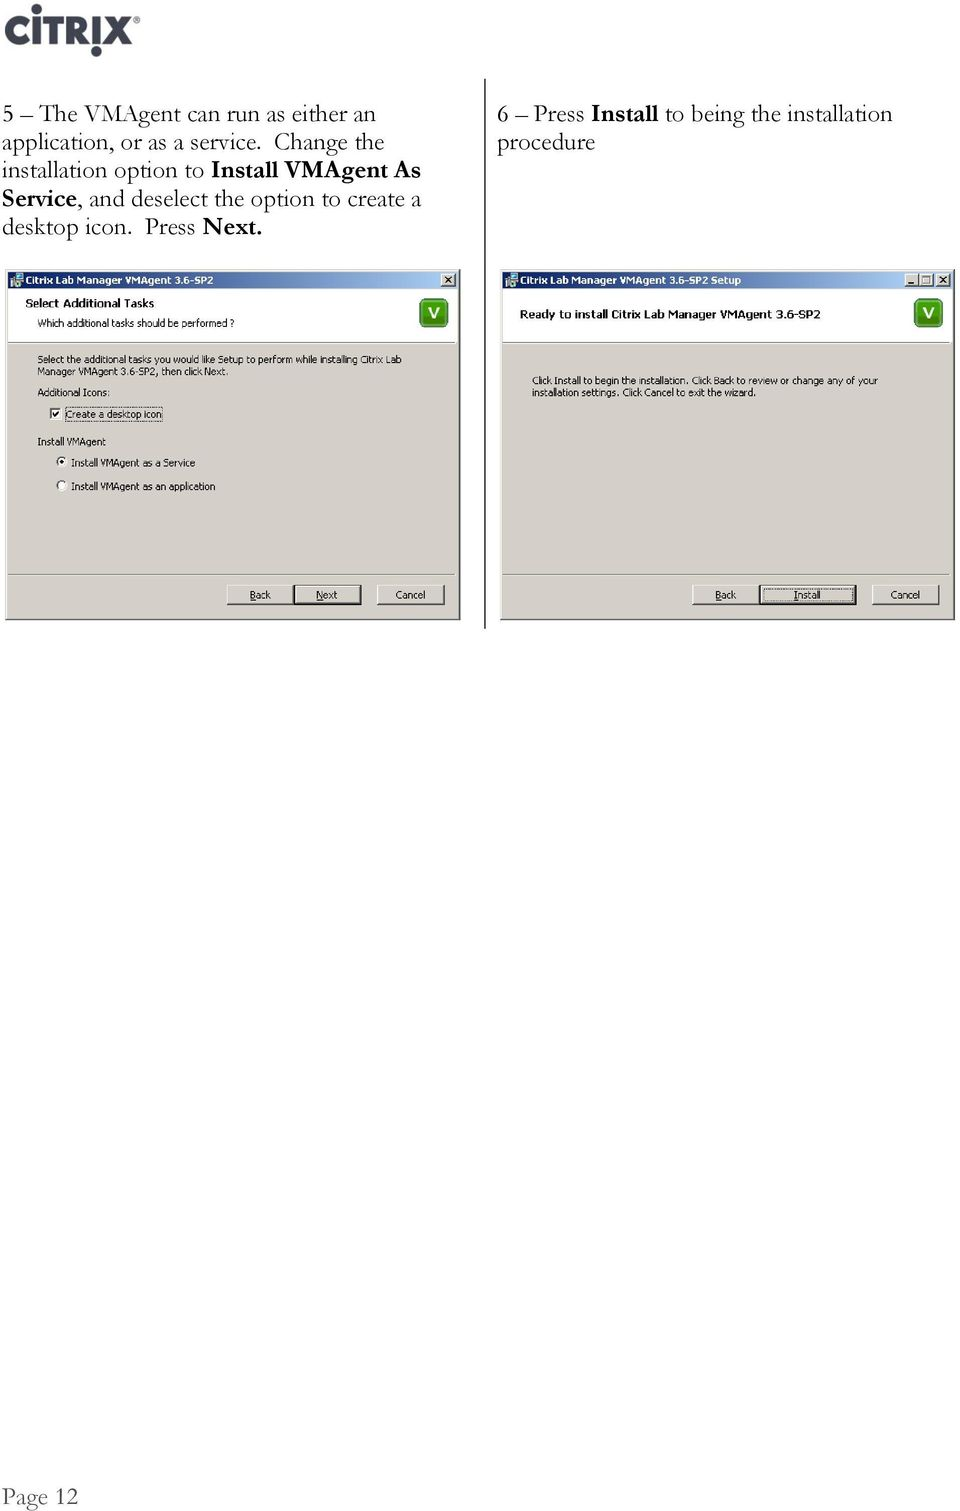 Change the installation option to Install VMAgent As Service,